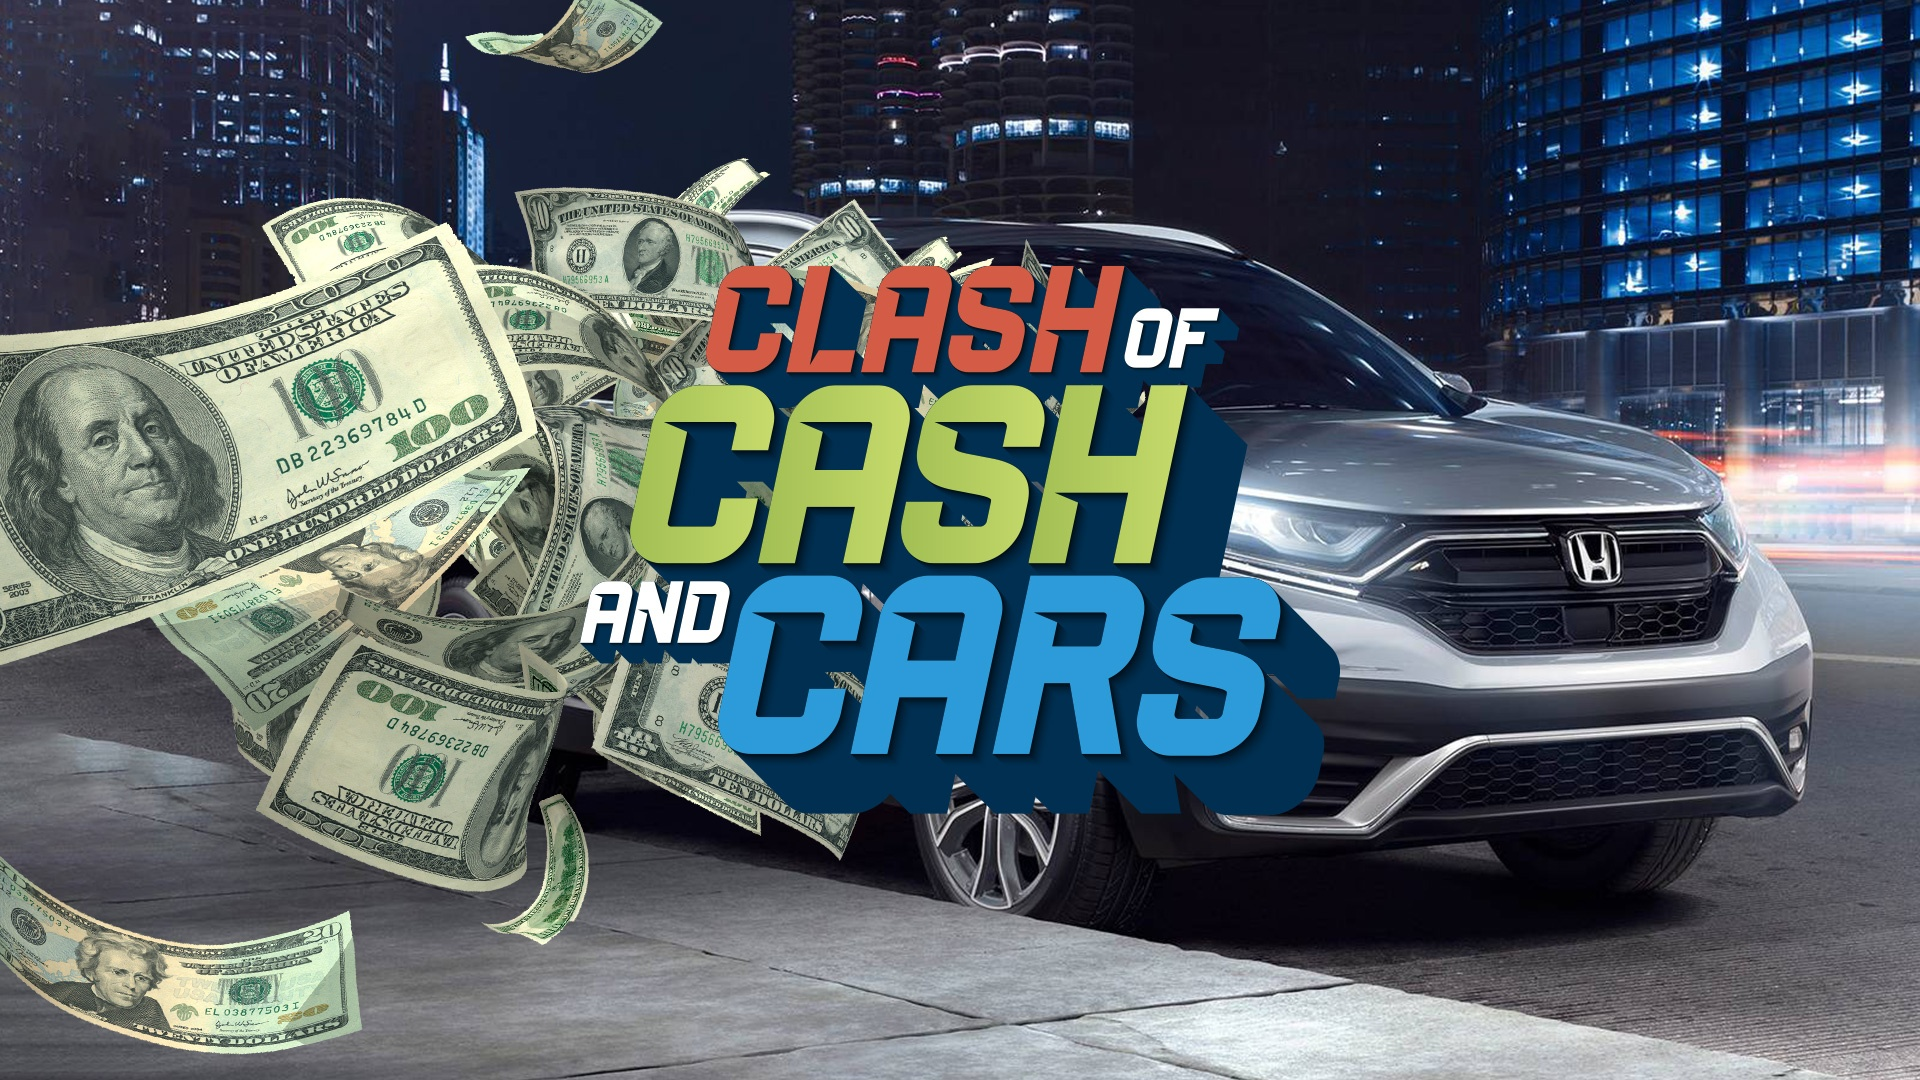 Win Your Share Of $43,000 CASH Or CAR